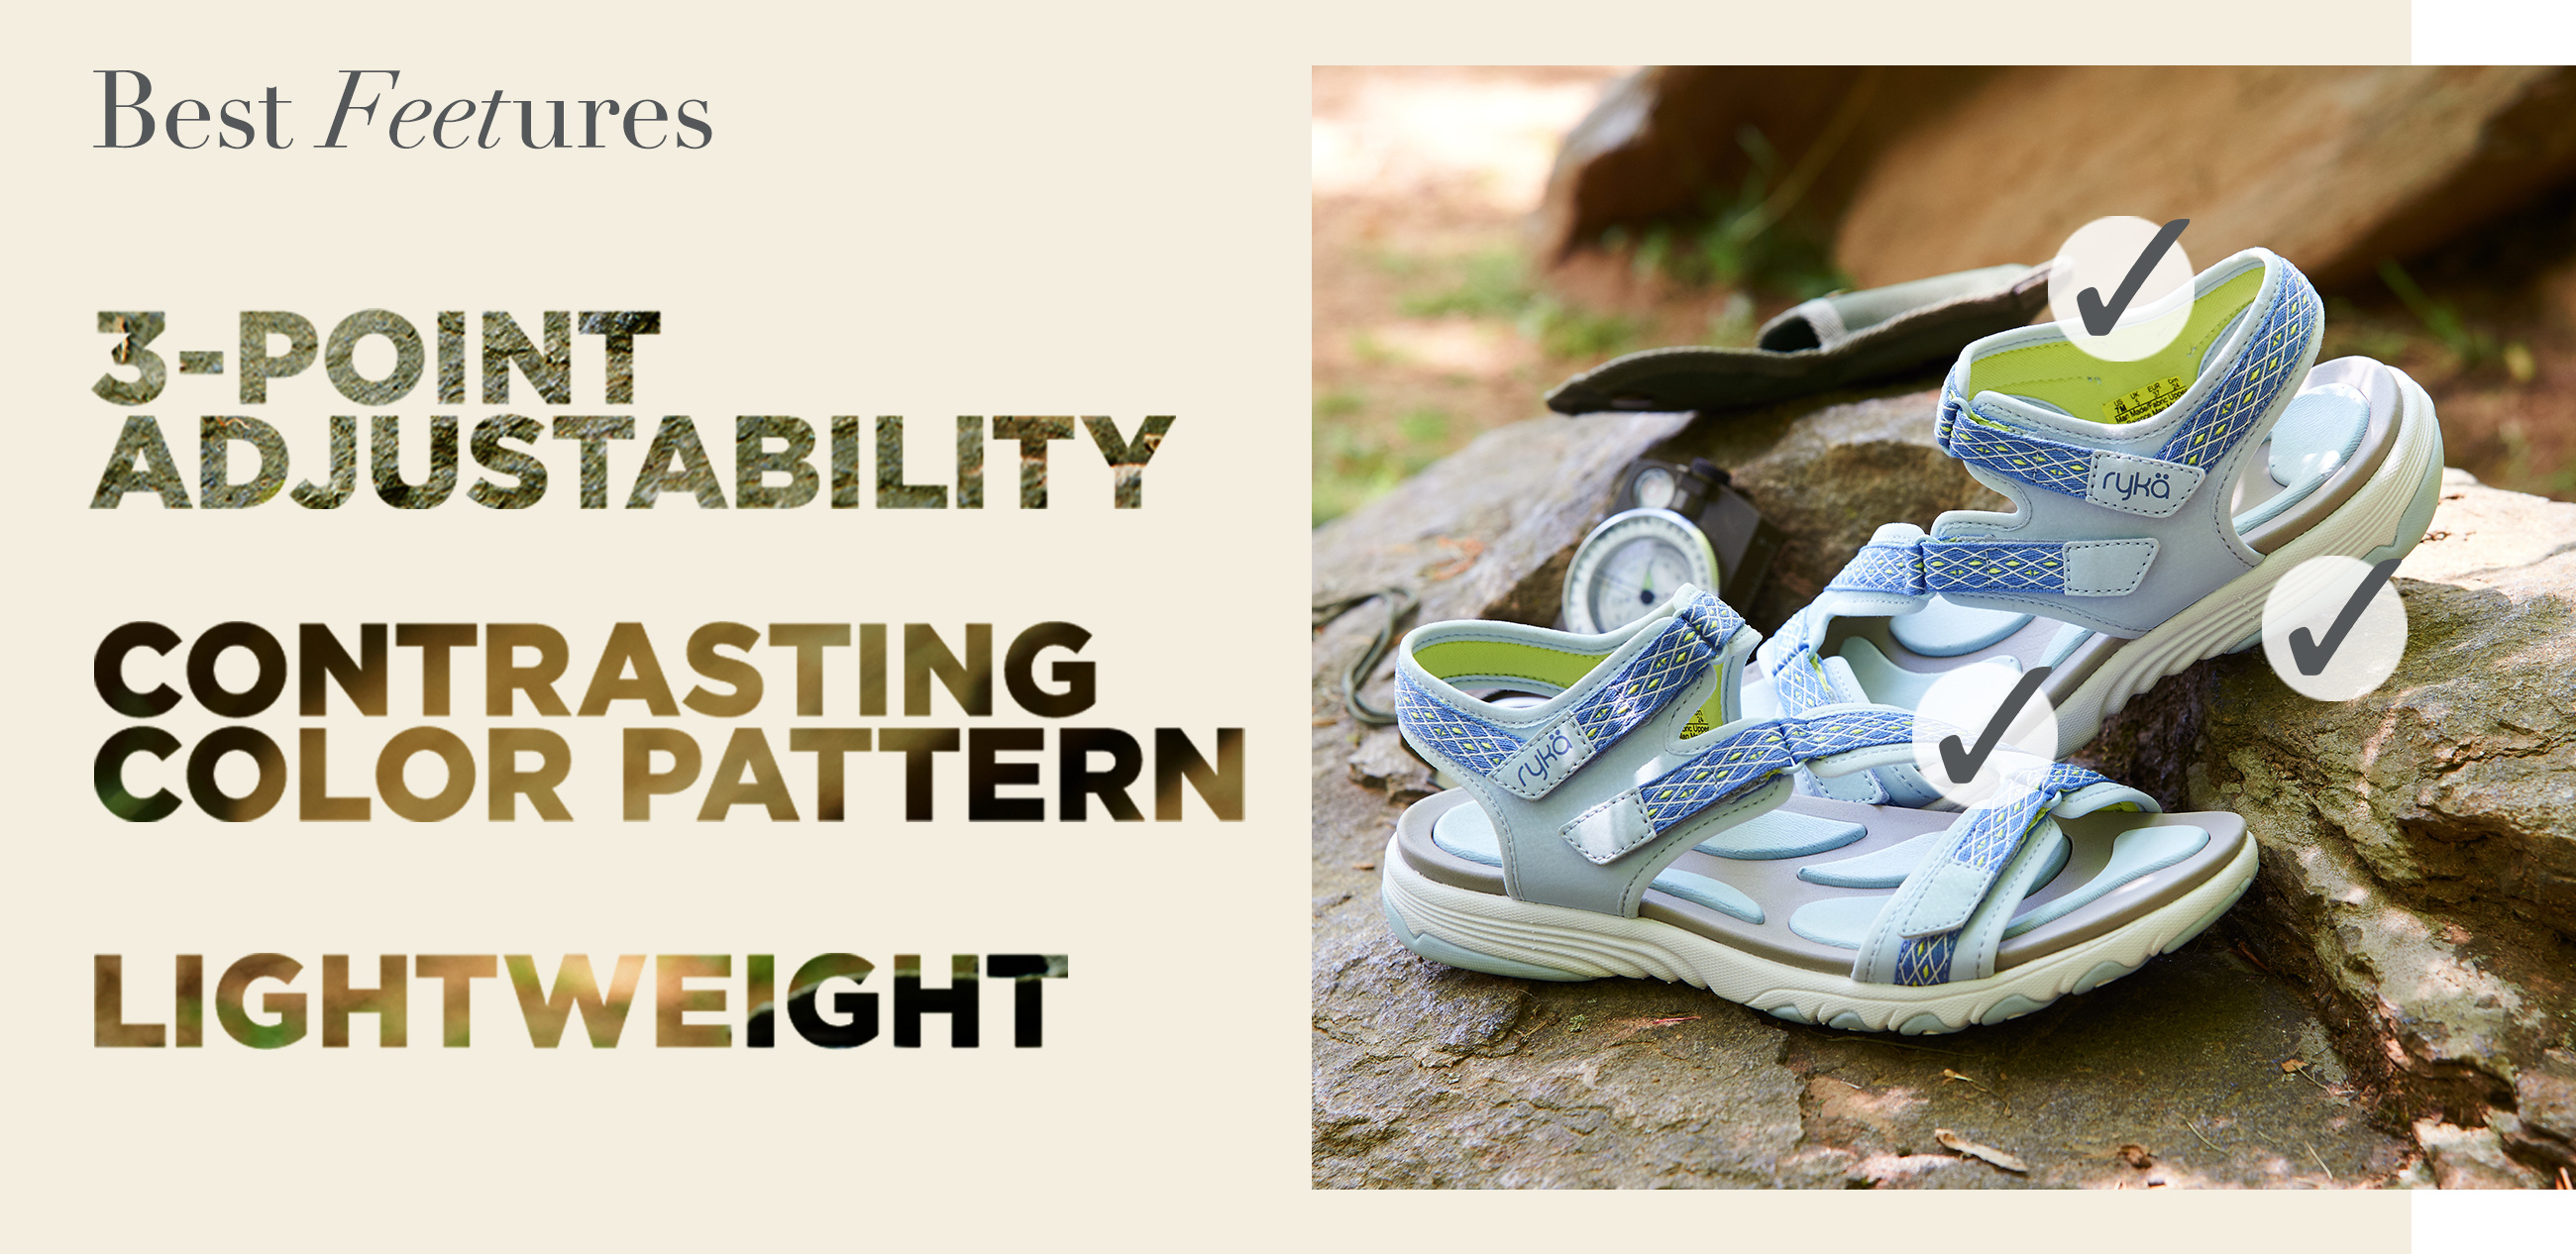 Best Feetures. 3-POINT ADJUSTABILITY  CONTRASTING COLOR PATTERN  LIGHTWEIGHT